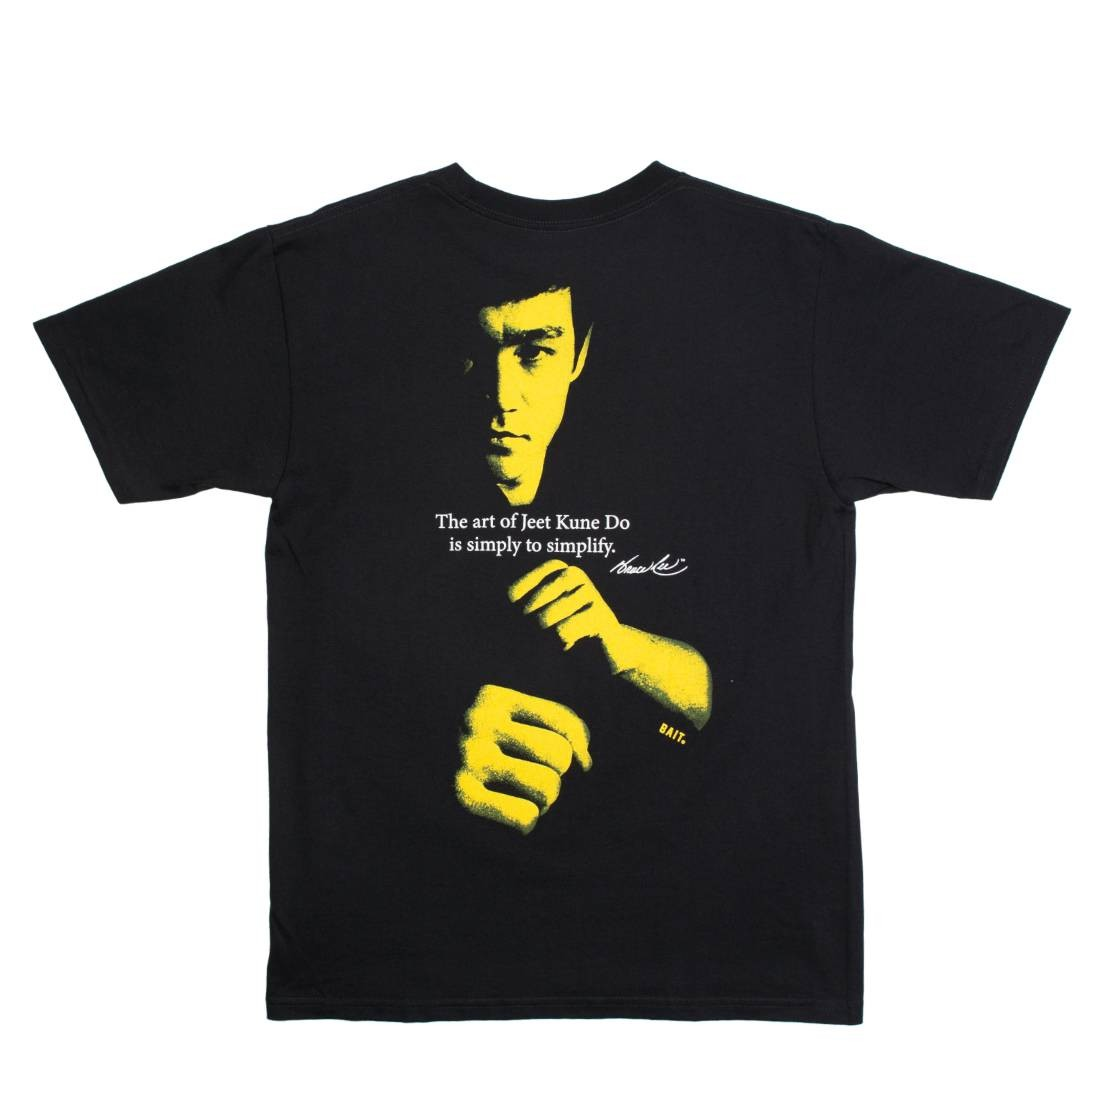 BAIT x Bruce Lee Men Jeet Kune Do Tee (black)